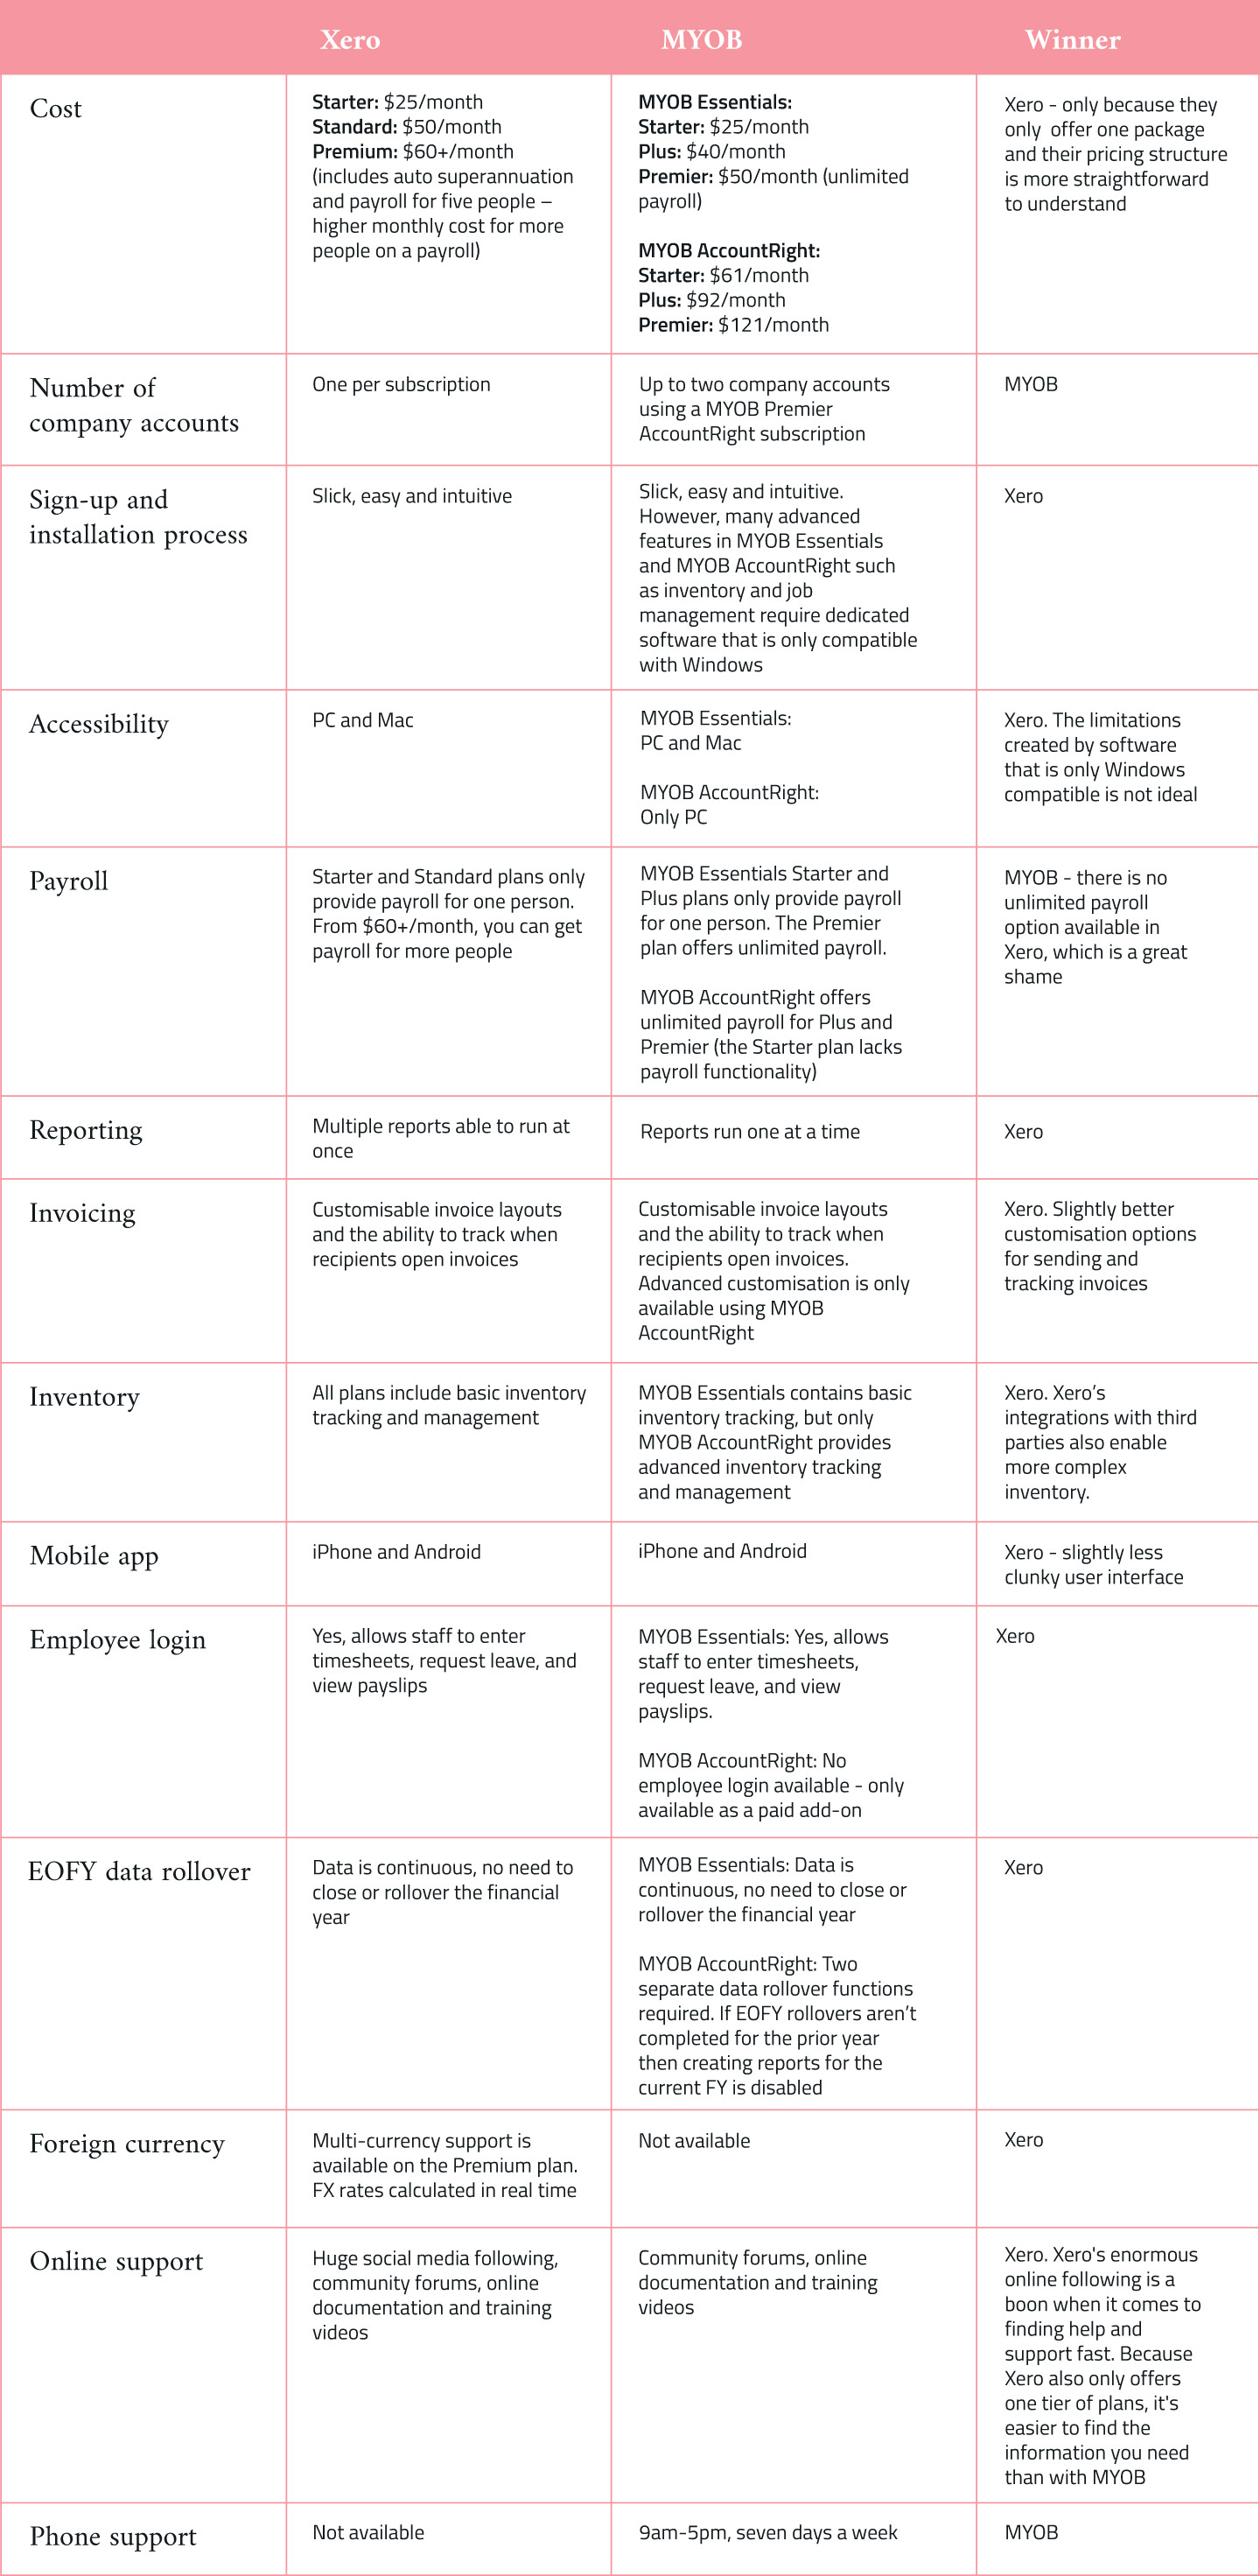 comparison table of Xero vs MYOB